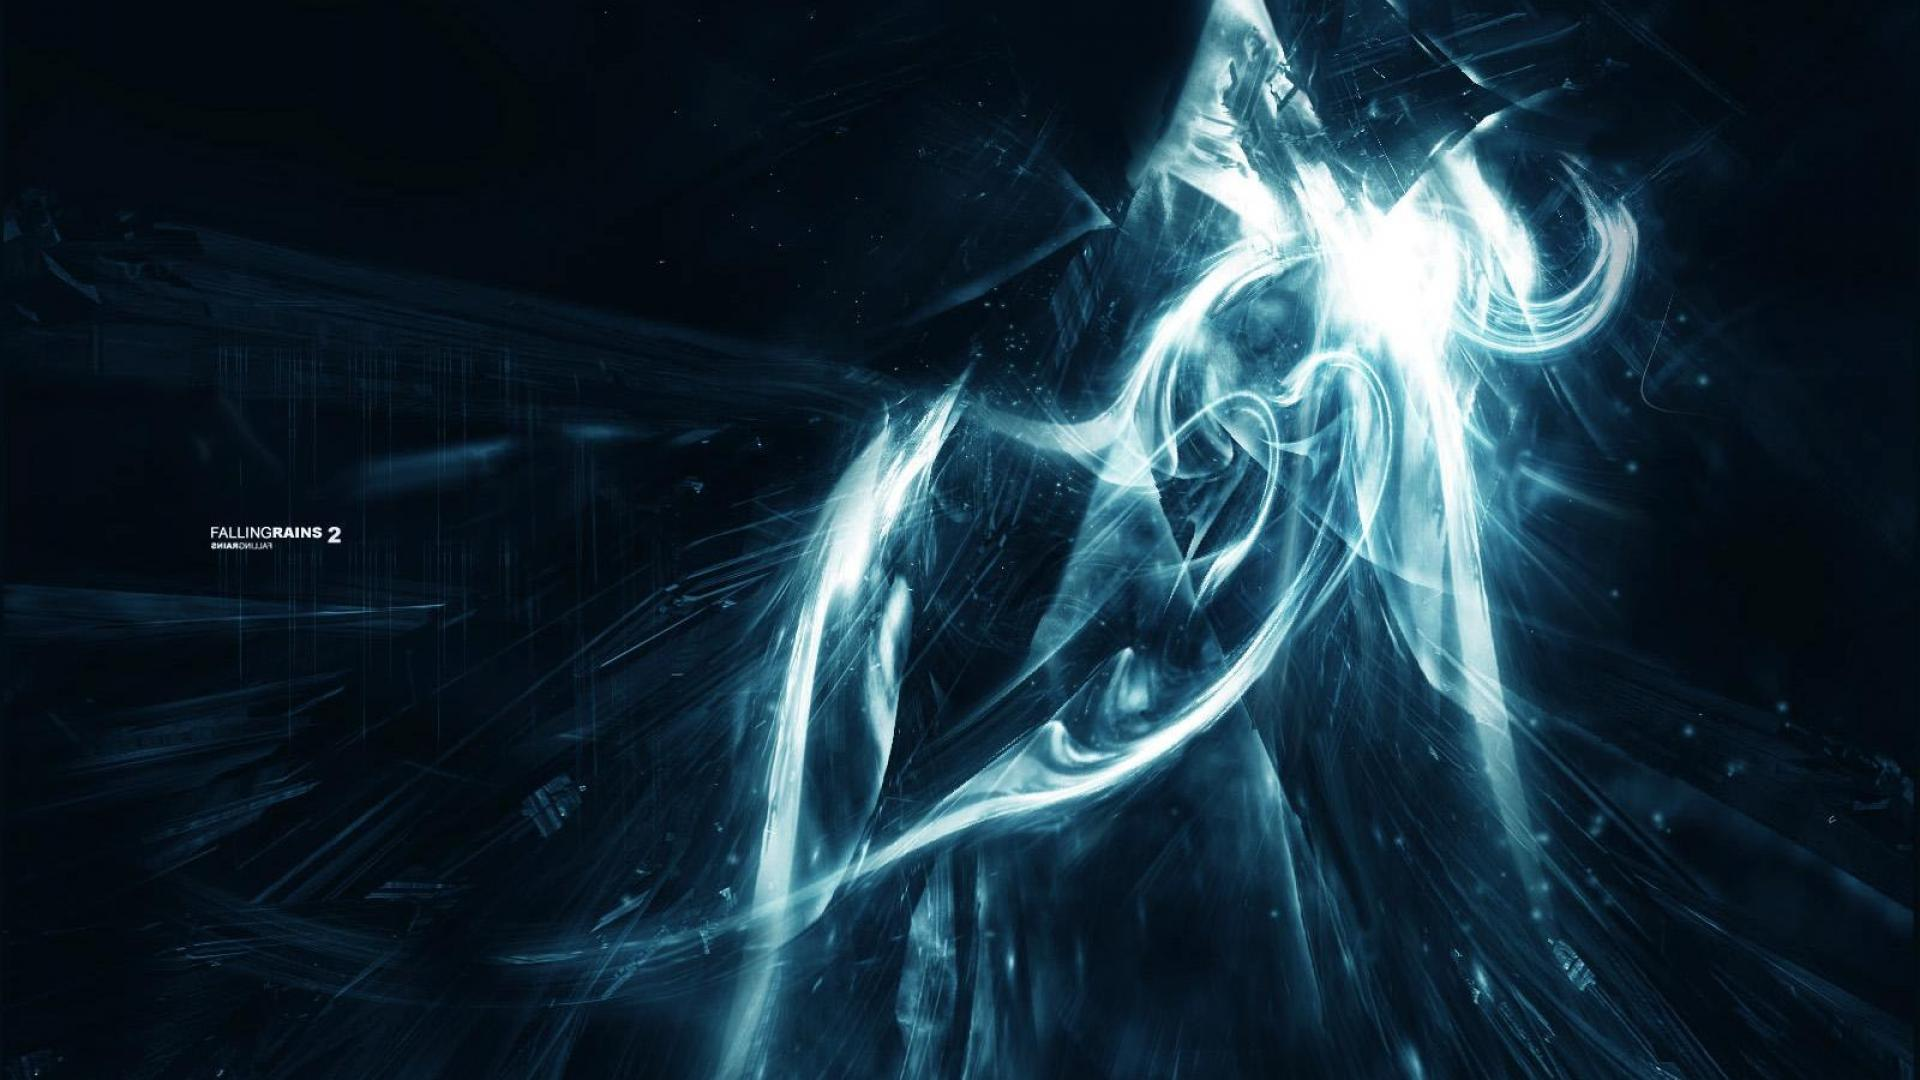 Awesome Pictures For Wallpaper Wallpapercraft 1920x1080